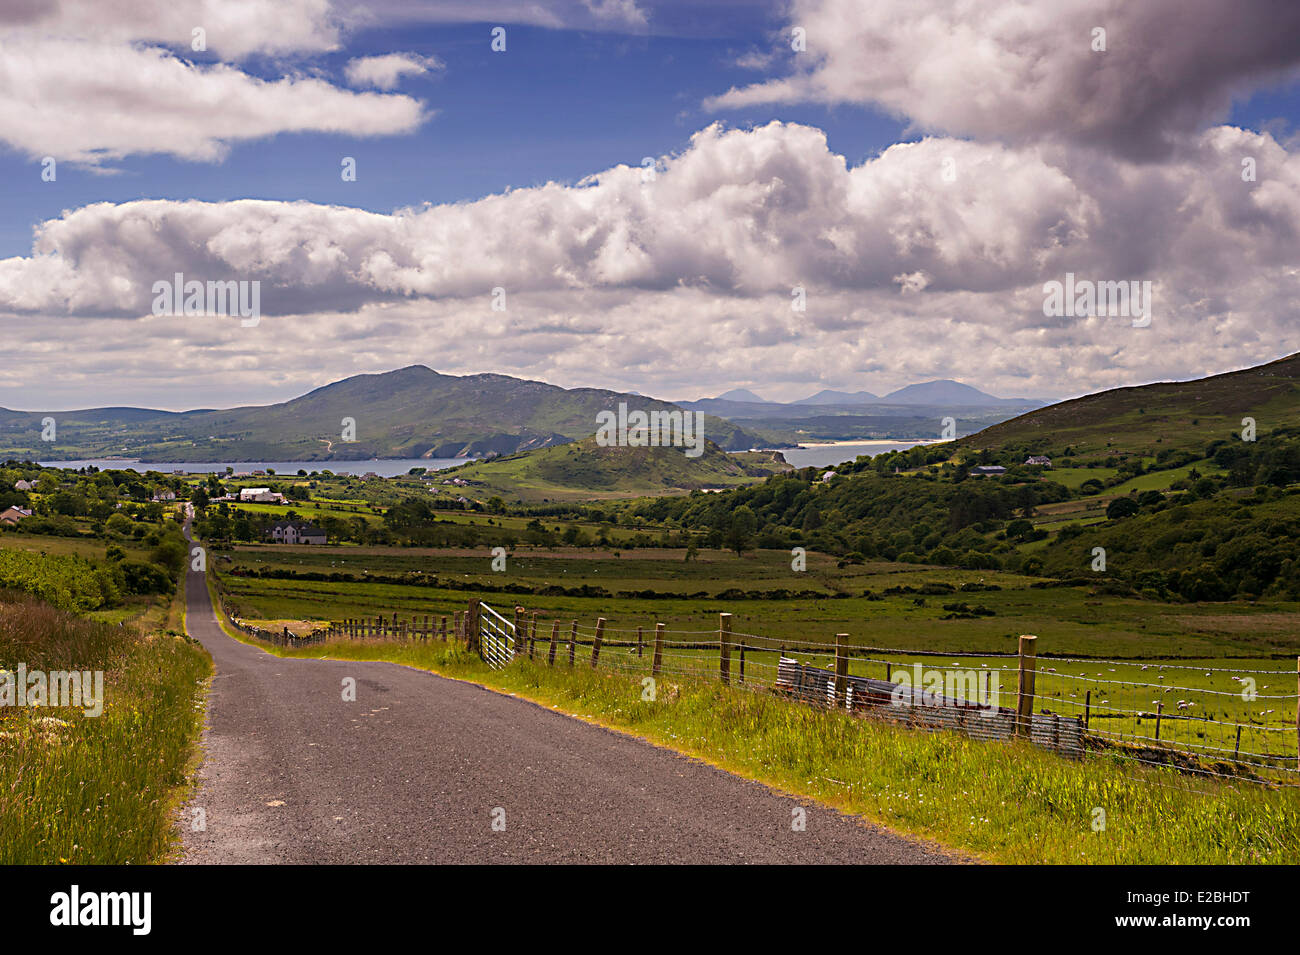 Country road in North West Donegal from the Mamore Gap, Inishowen Peninsula, Donegal, Ireland Stock Photo